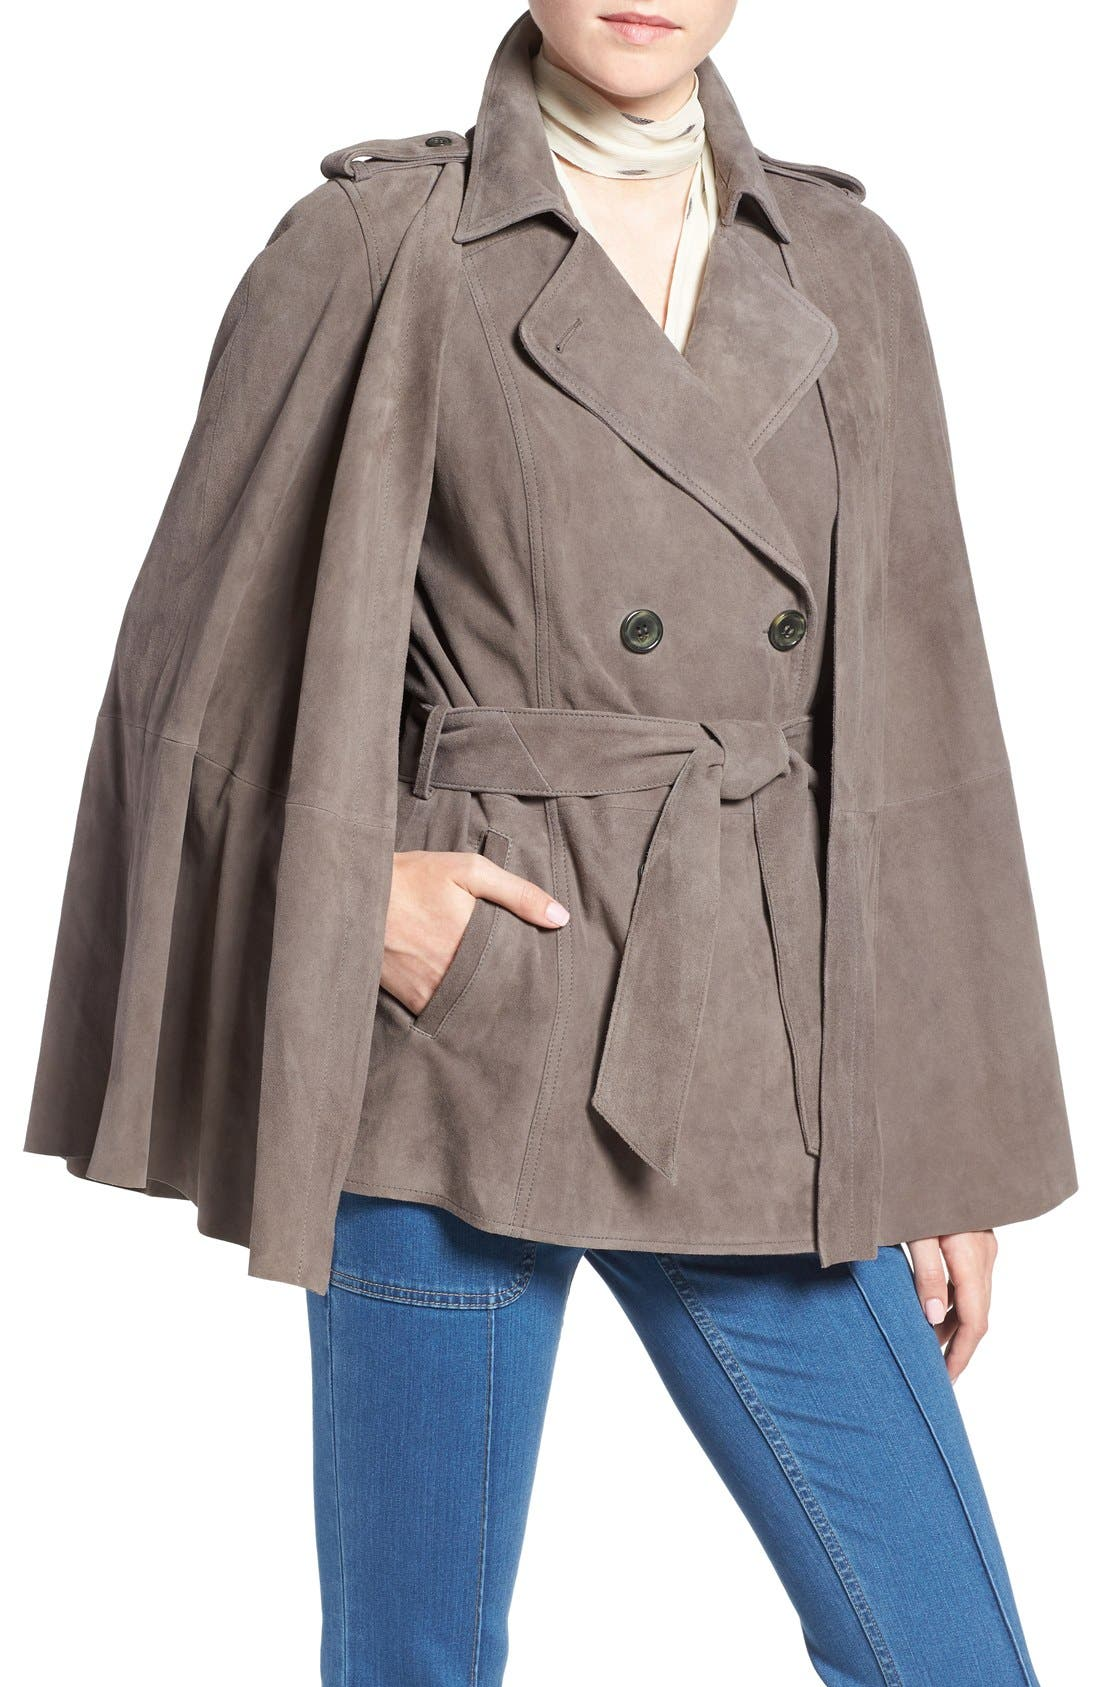 Main Image - Olivia Palermo + Chelsea28 Suede Trench Vest with Removable Cape